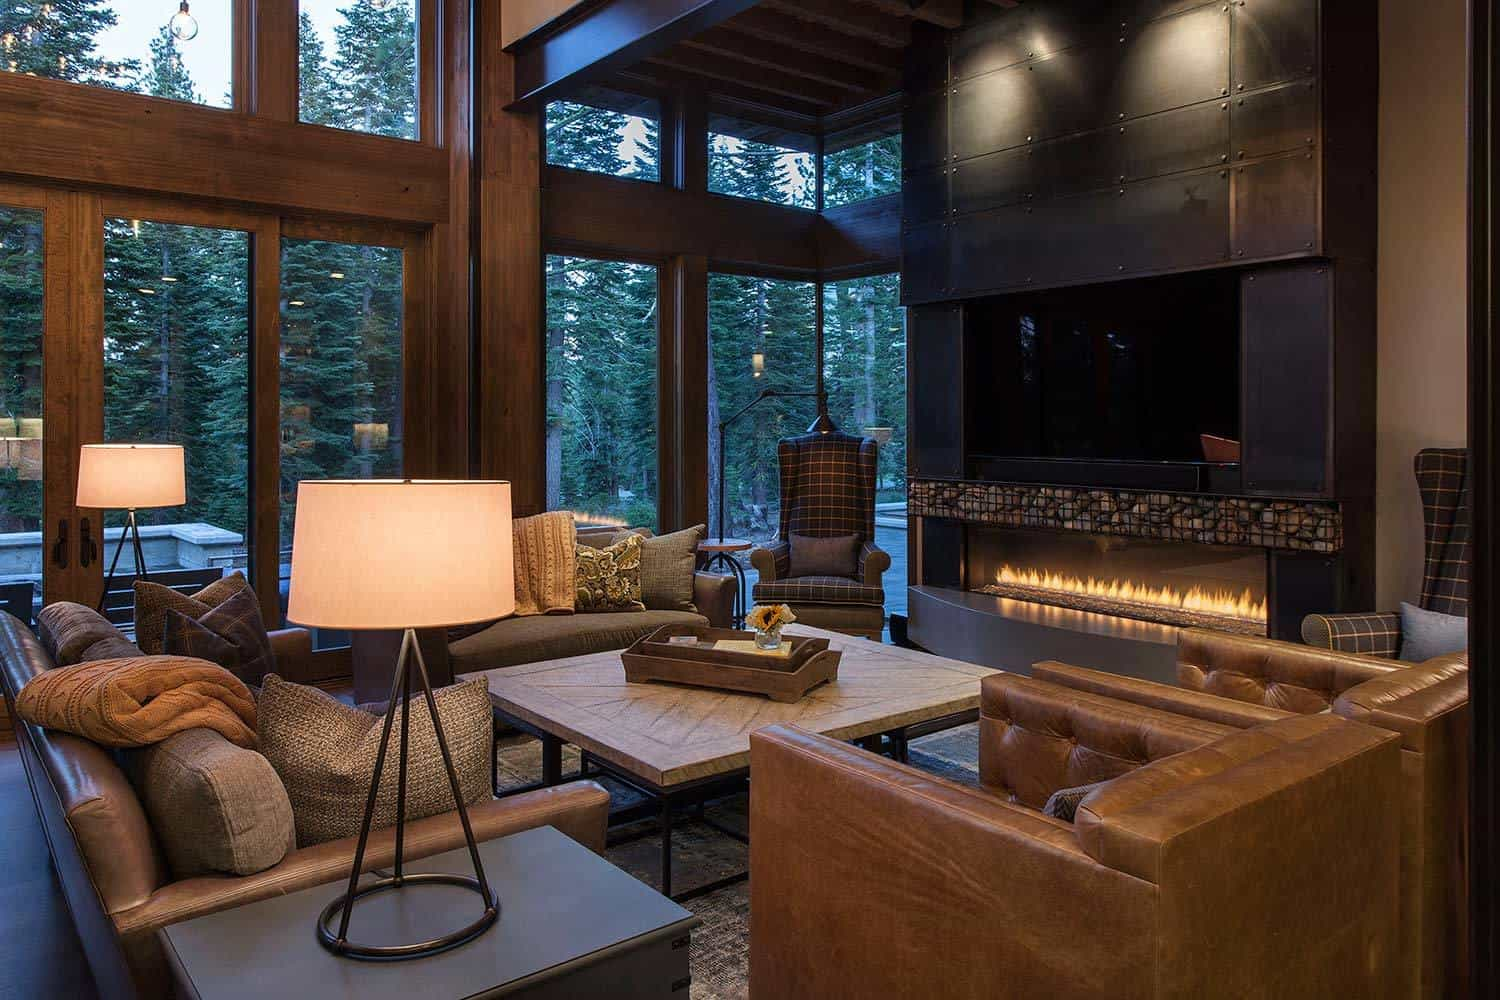 Lake tahoe getaway features contemporary barn aesthetic - Barn house decor ...